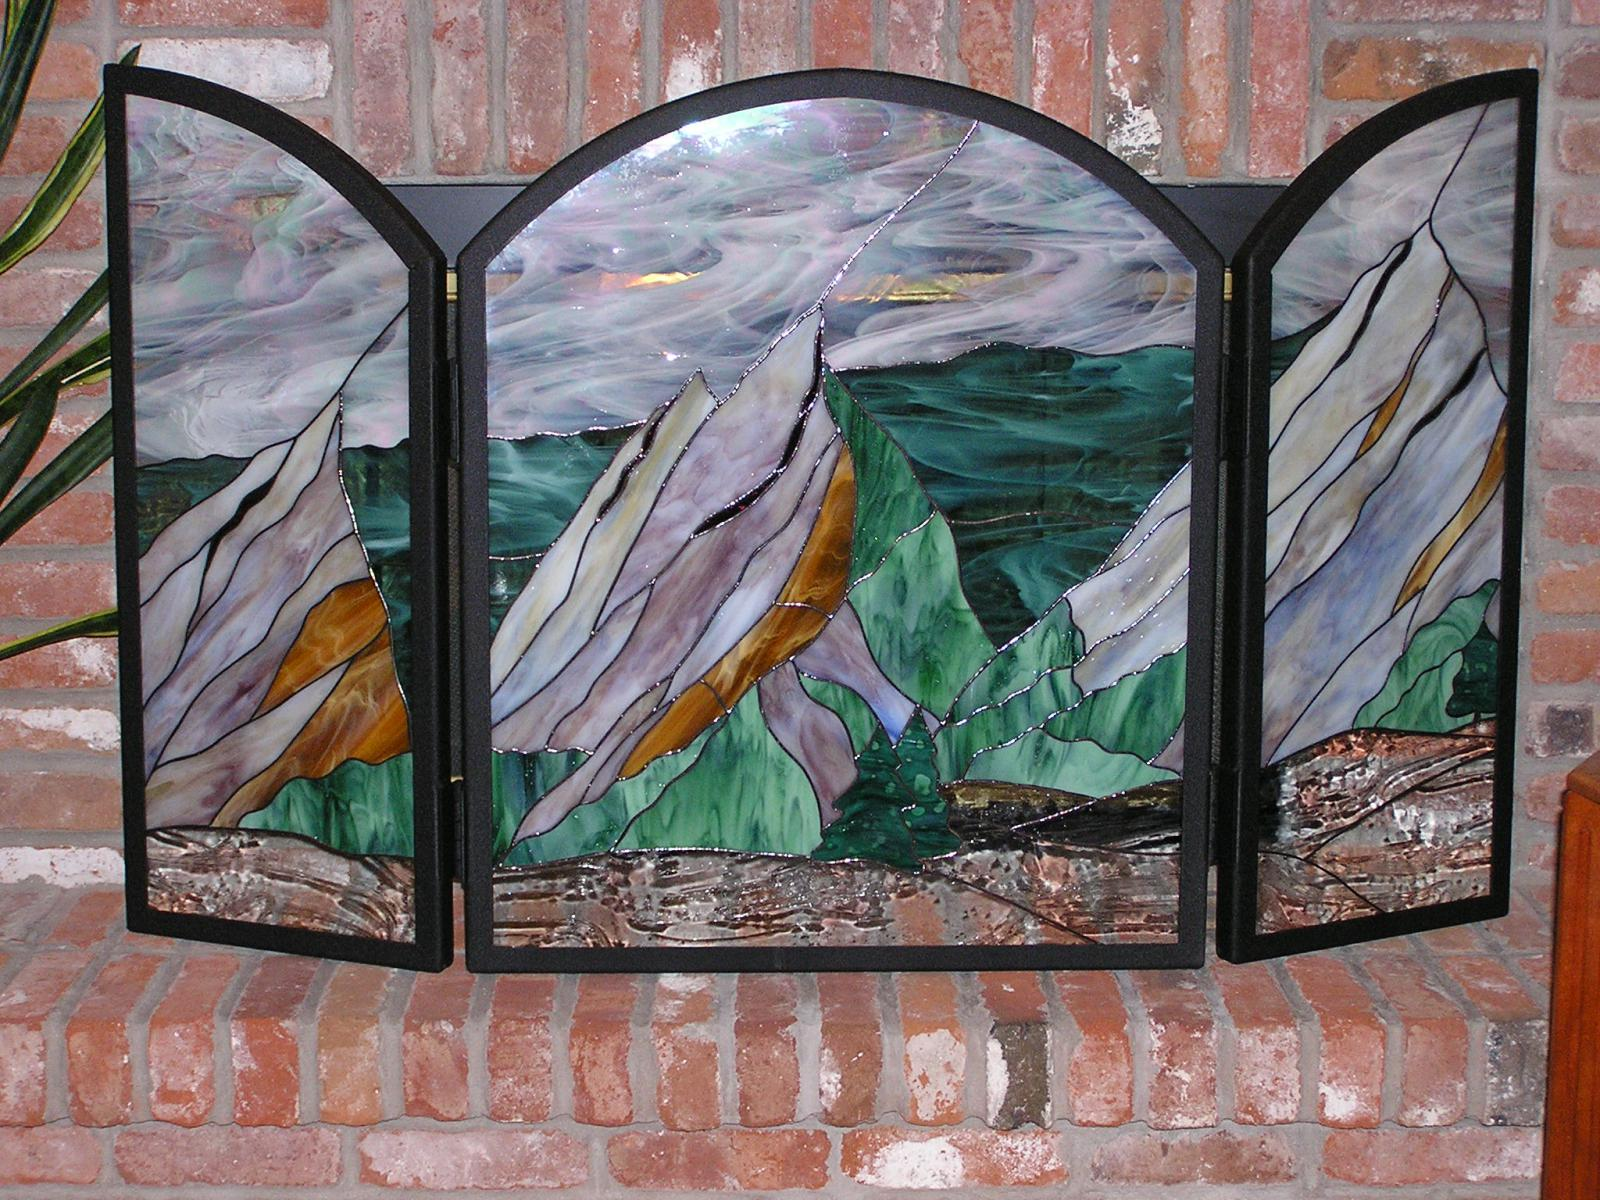 Gallery Stained and Fused Glass Boulder Great Glass Galore